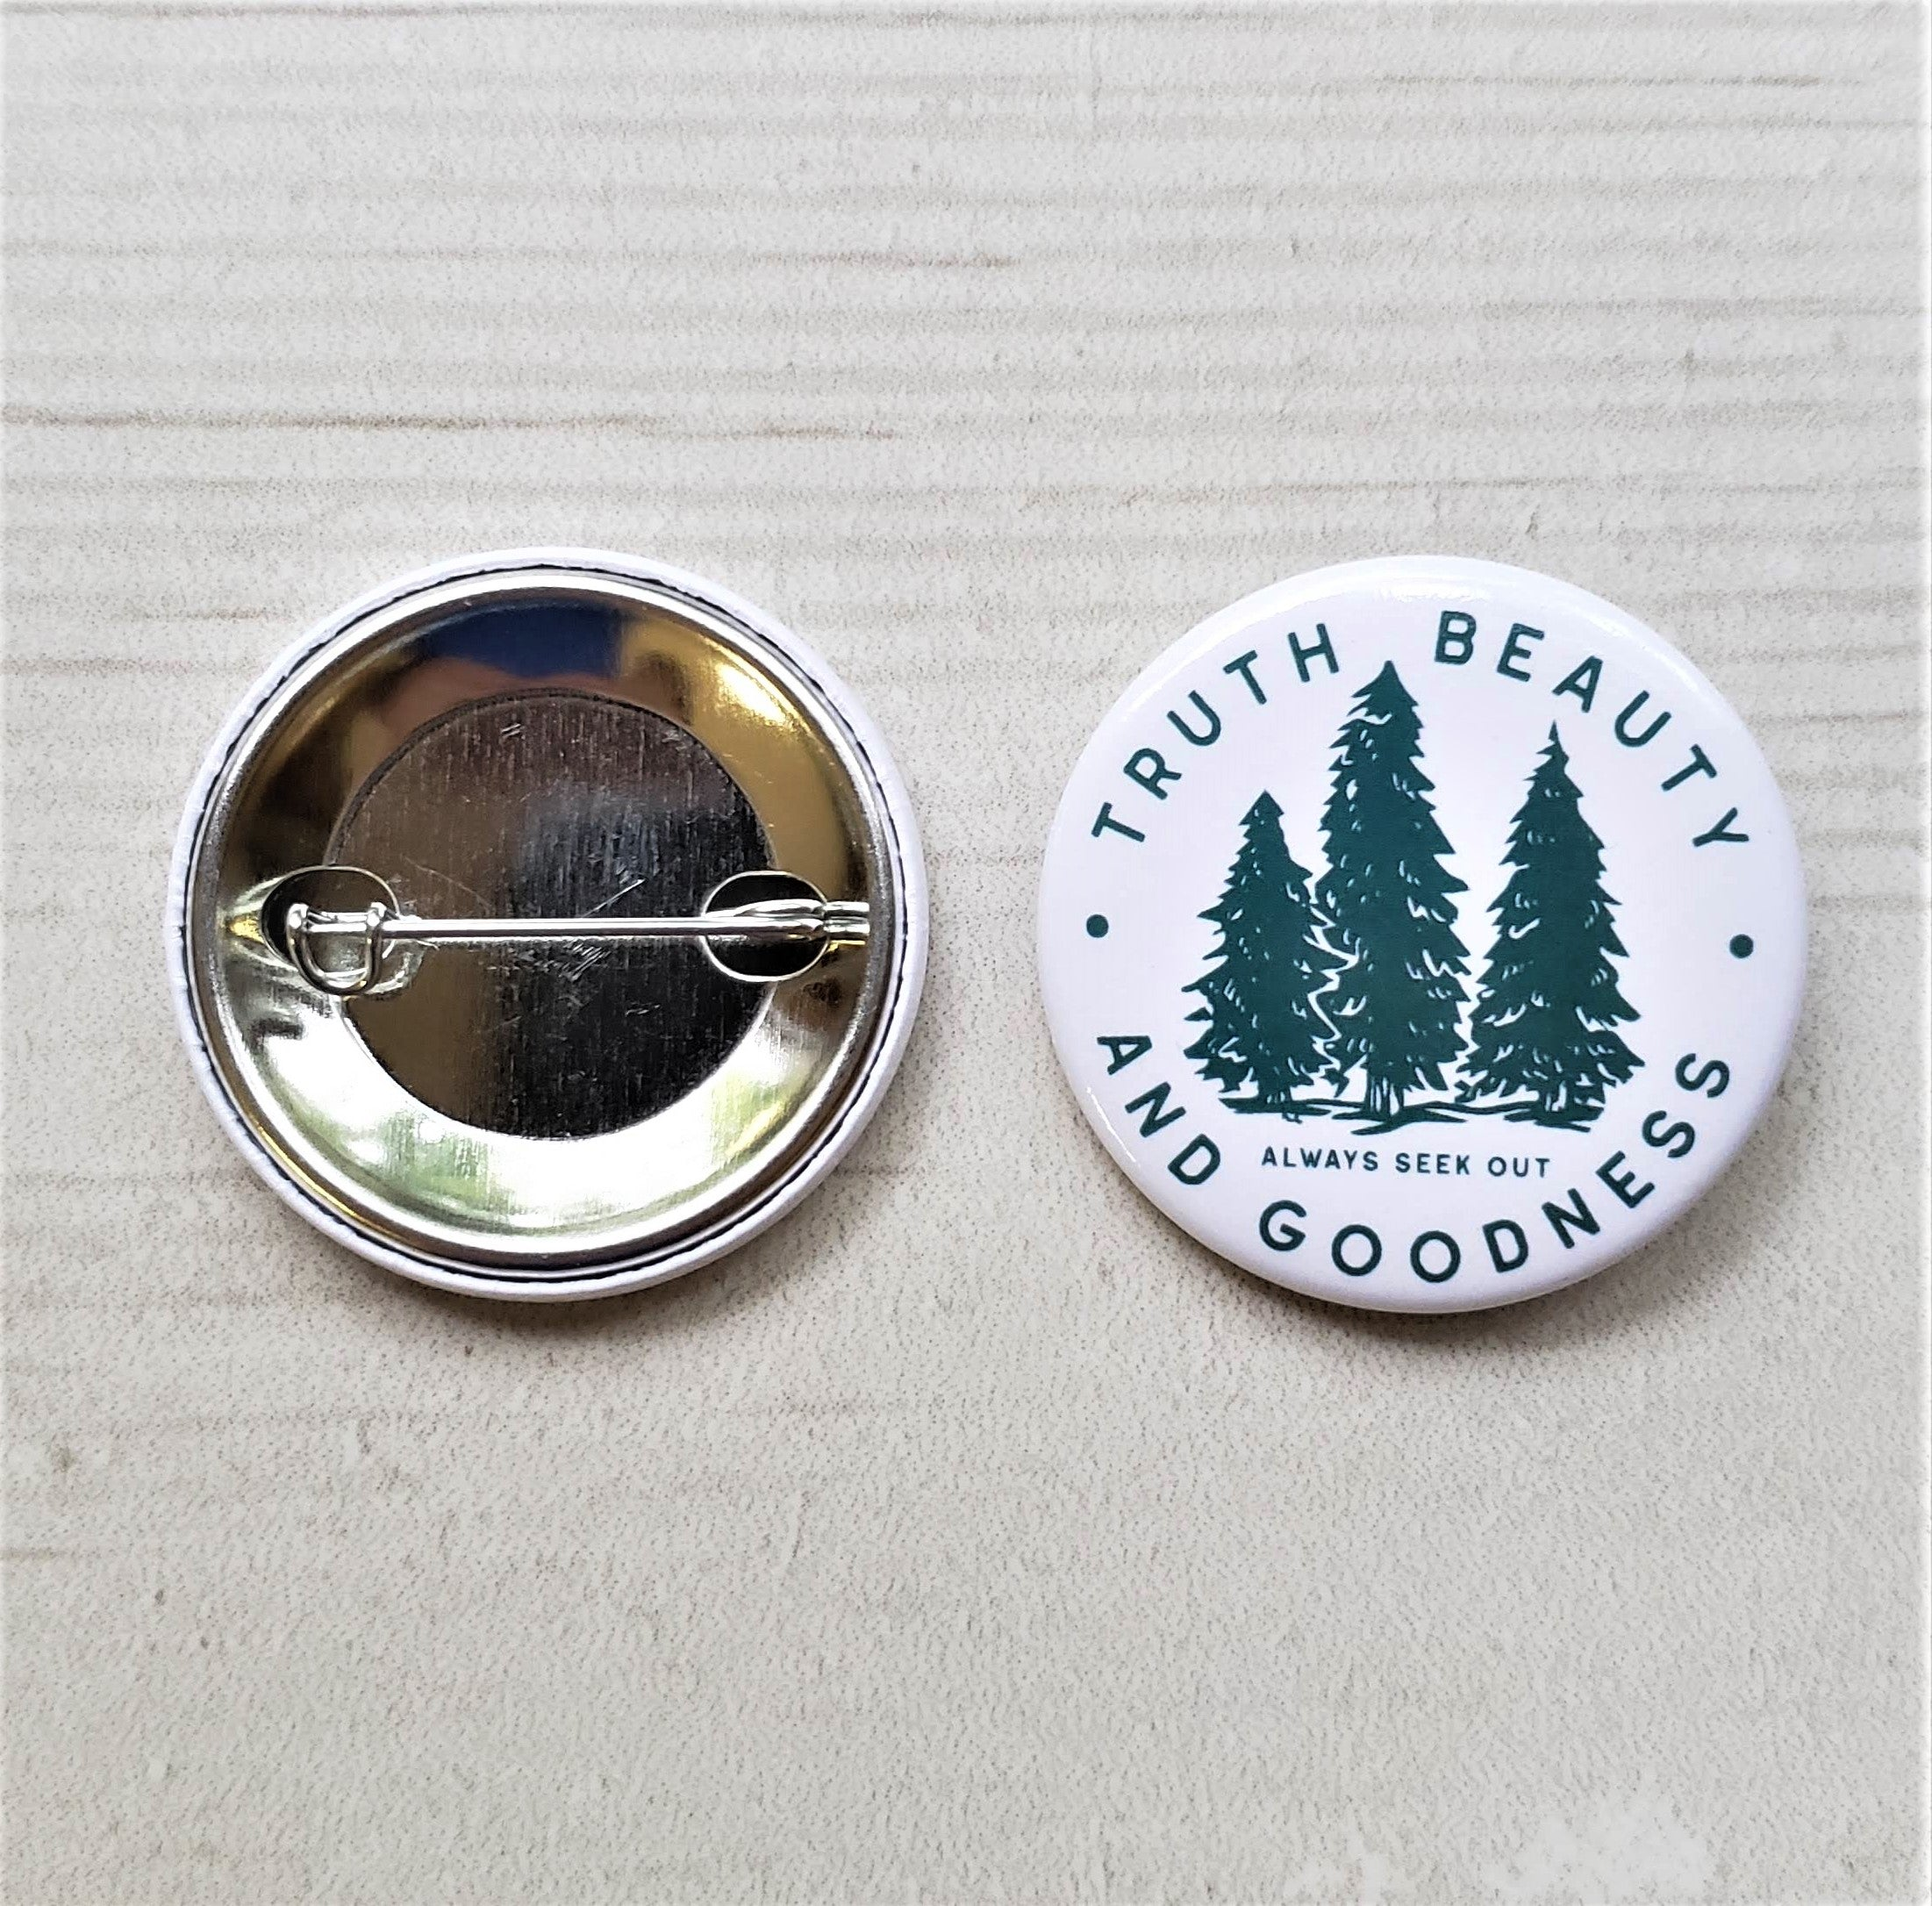 Truth Beauty and Goodness Buttons | Catholic Buttons - pin on apparel, hats, backpacks